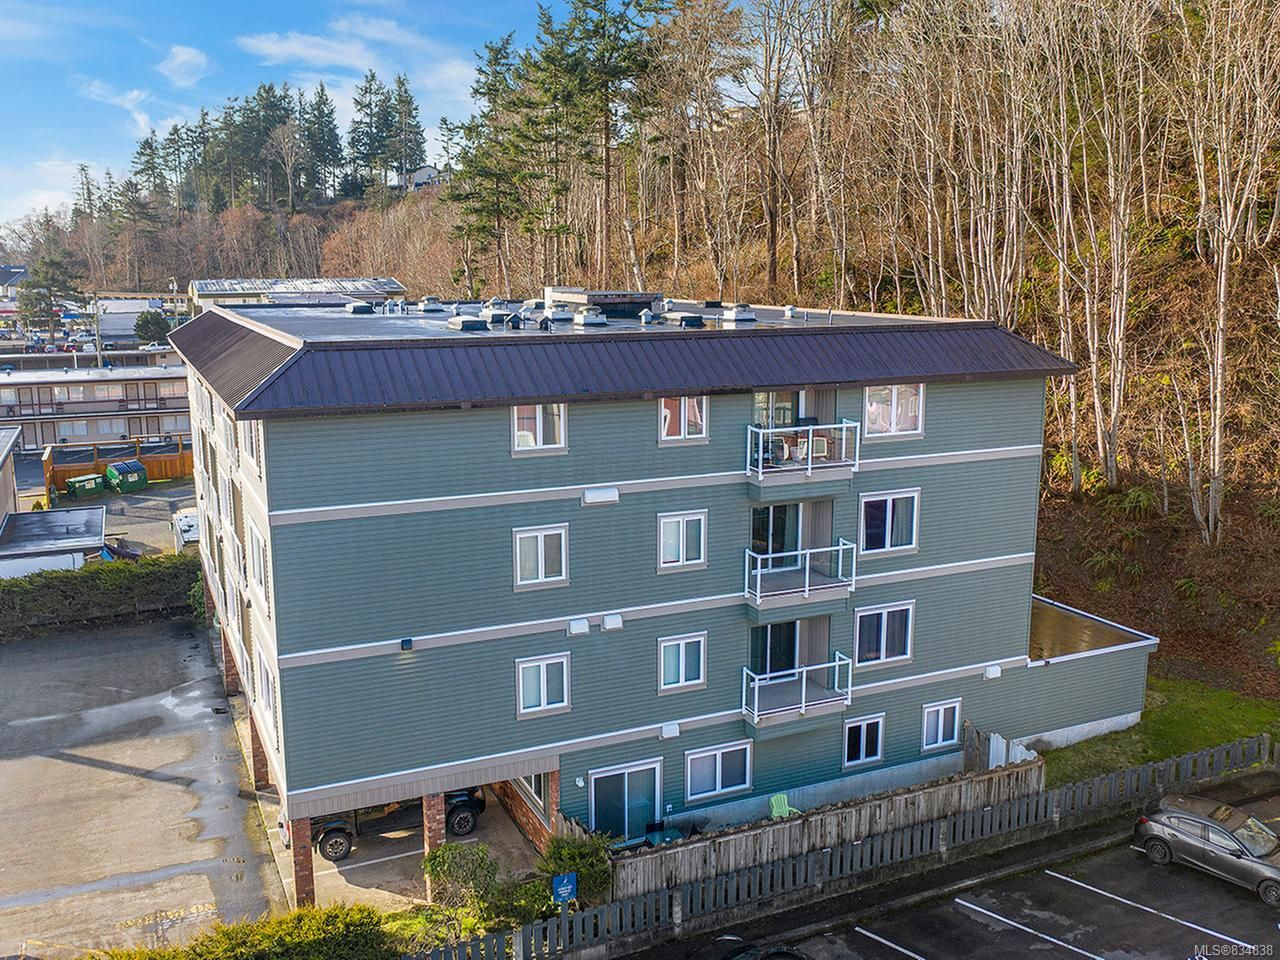 Photo 22: Photos: 301 894 S Island Hwy in CAMPBELL RIVER: CR Campbell River Central Condo for sale (Campbell River)  : MLS®# 834838